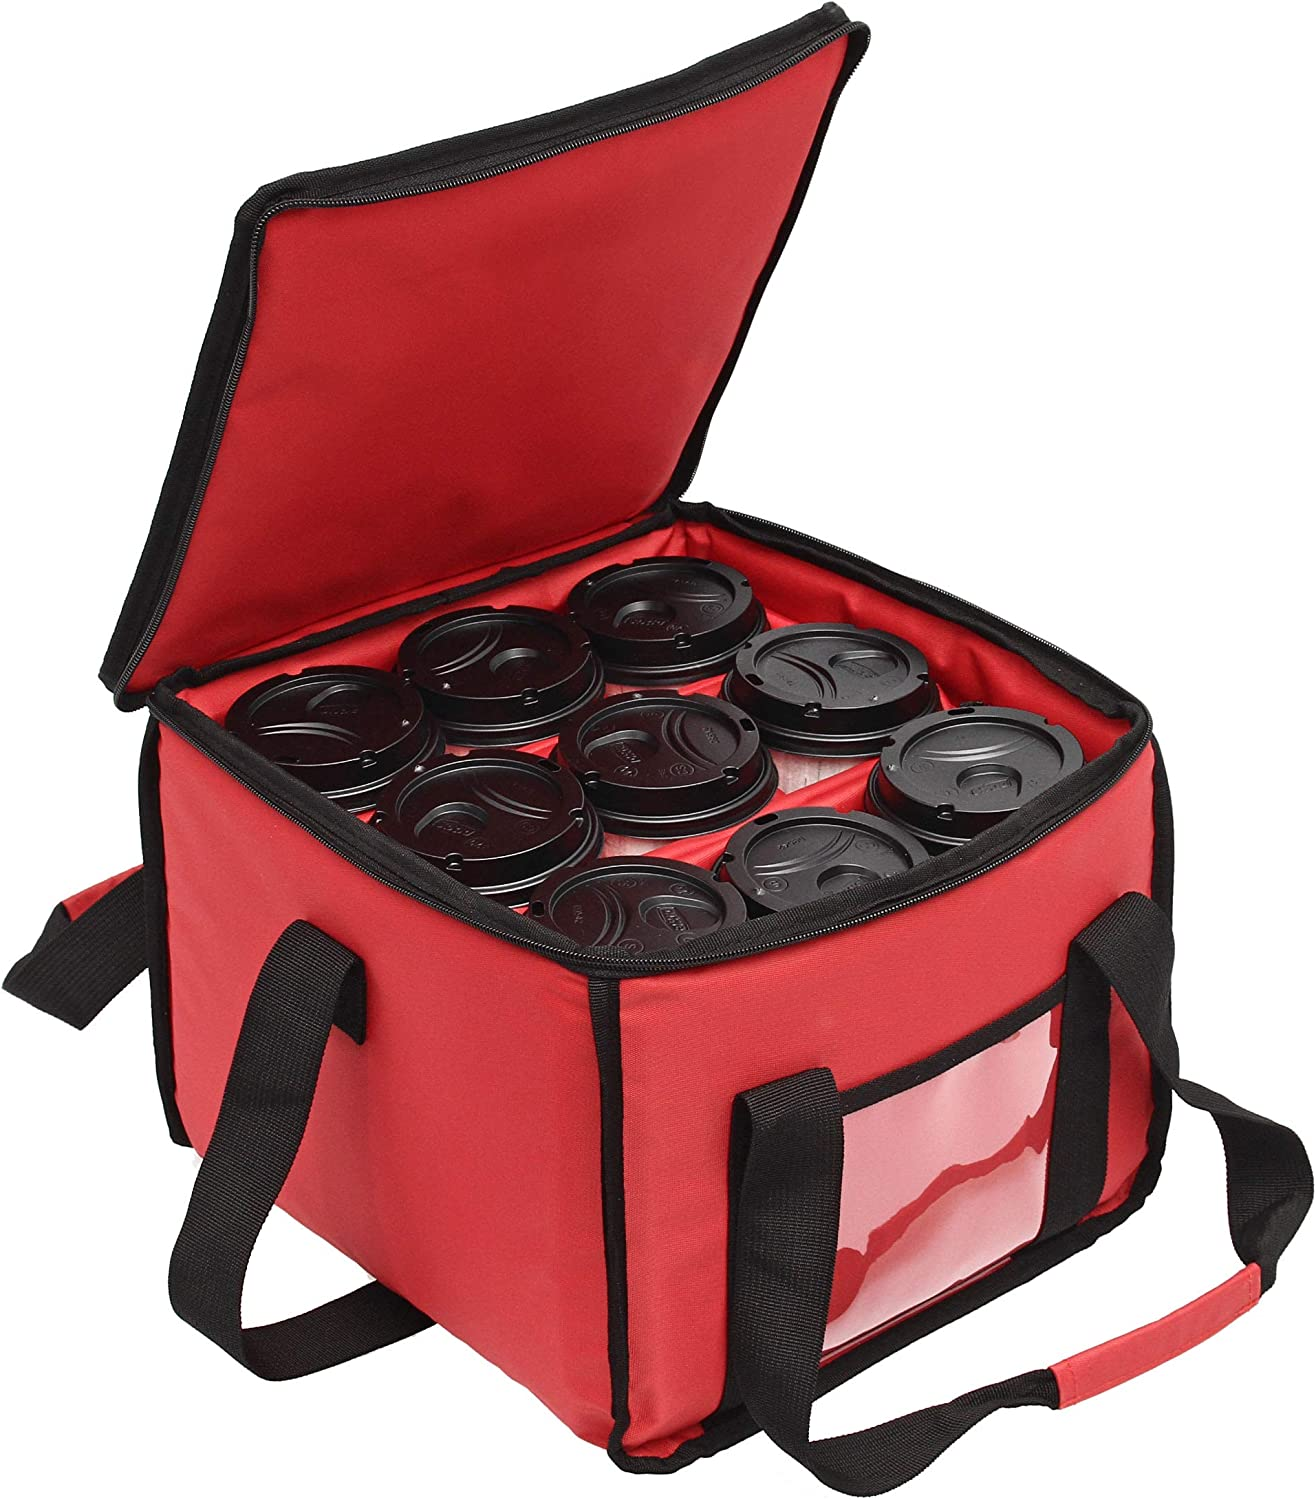 Drink Carrier and Food Delivery Bag with Handle and Shoulder Strap - Multi Cup Holder Bag Holds up to 9 Coffee Cups - Insulated Portable Caddy Keeps Drinks Cold or Hot